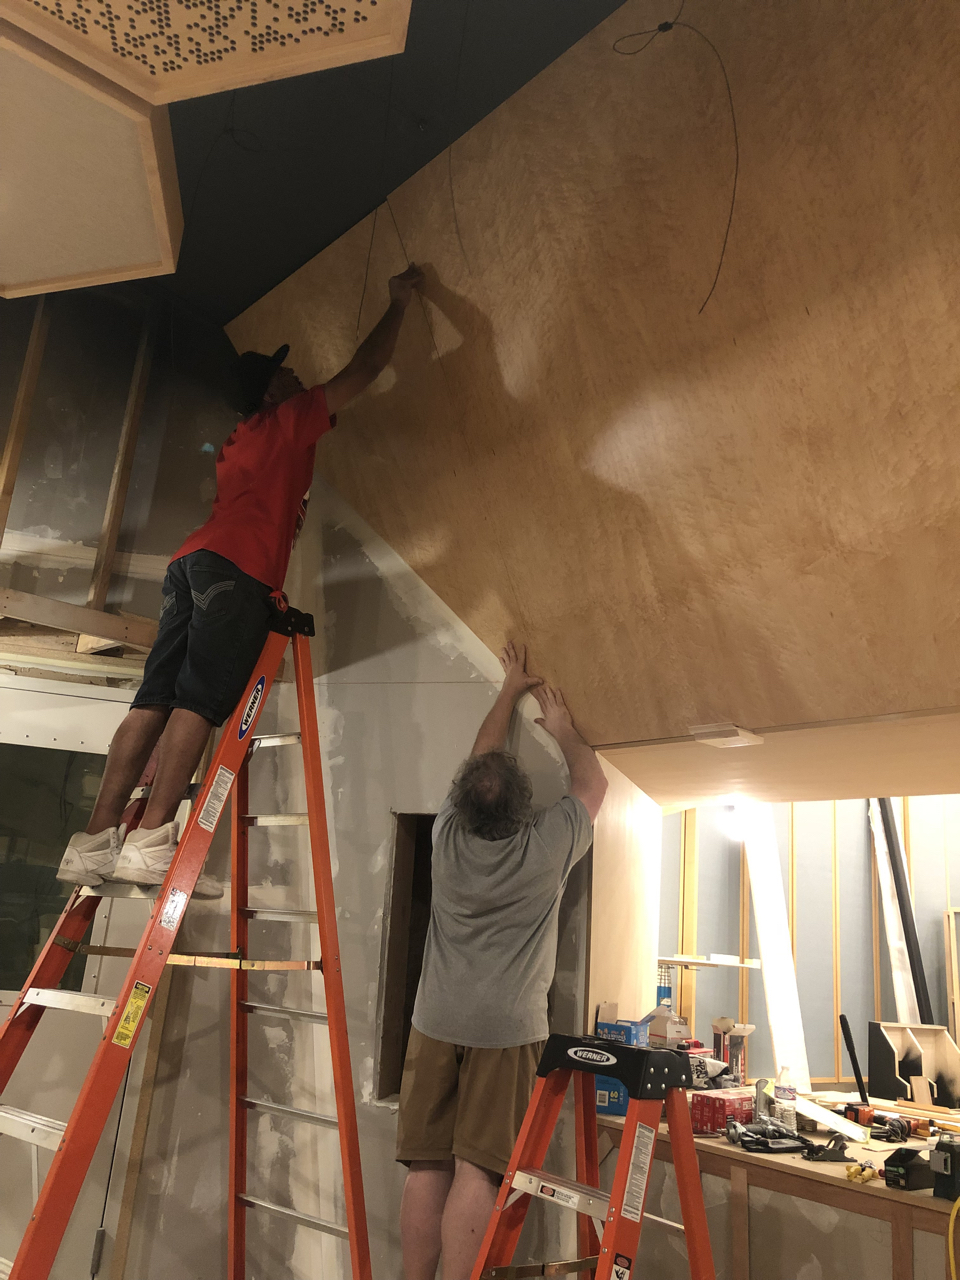 The 4th birds-eye maple panel being installed in control room 1. Great precision is needed to cut this really expensive wood at such crazy angles. Tony Brett and his crew have definitely earned their reputation as excellent craftsmen.